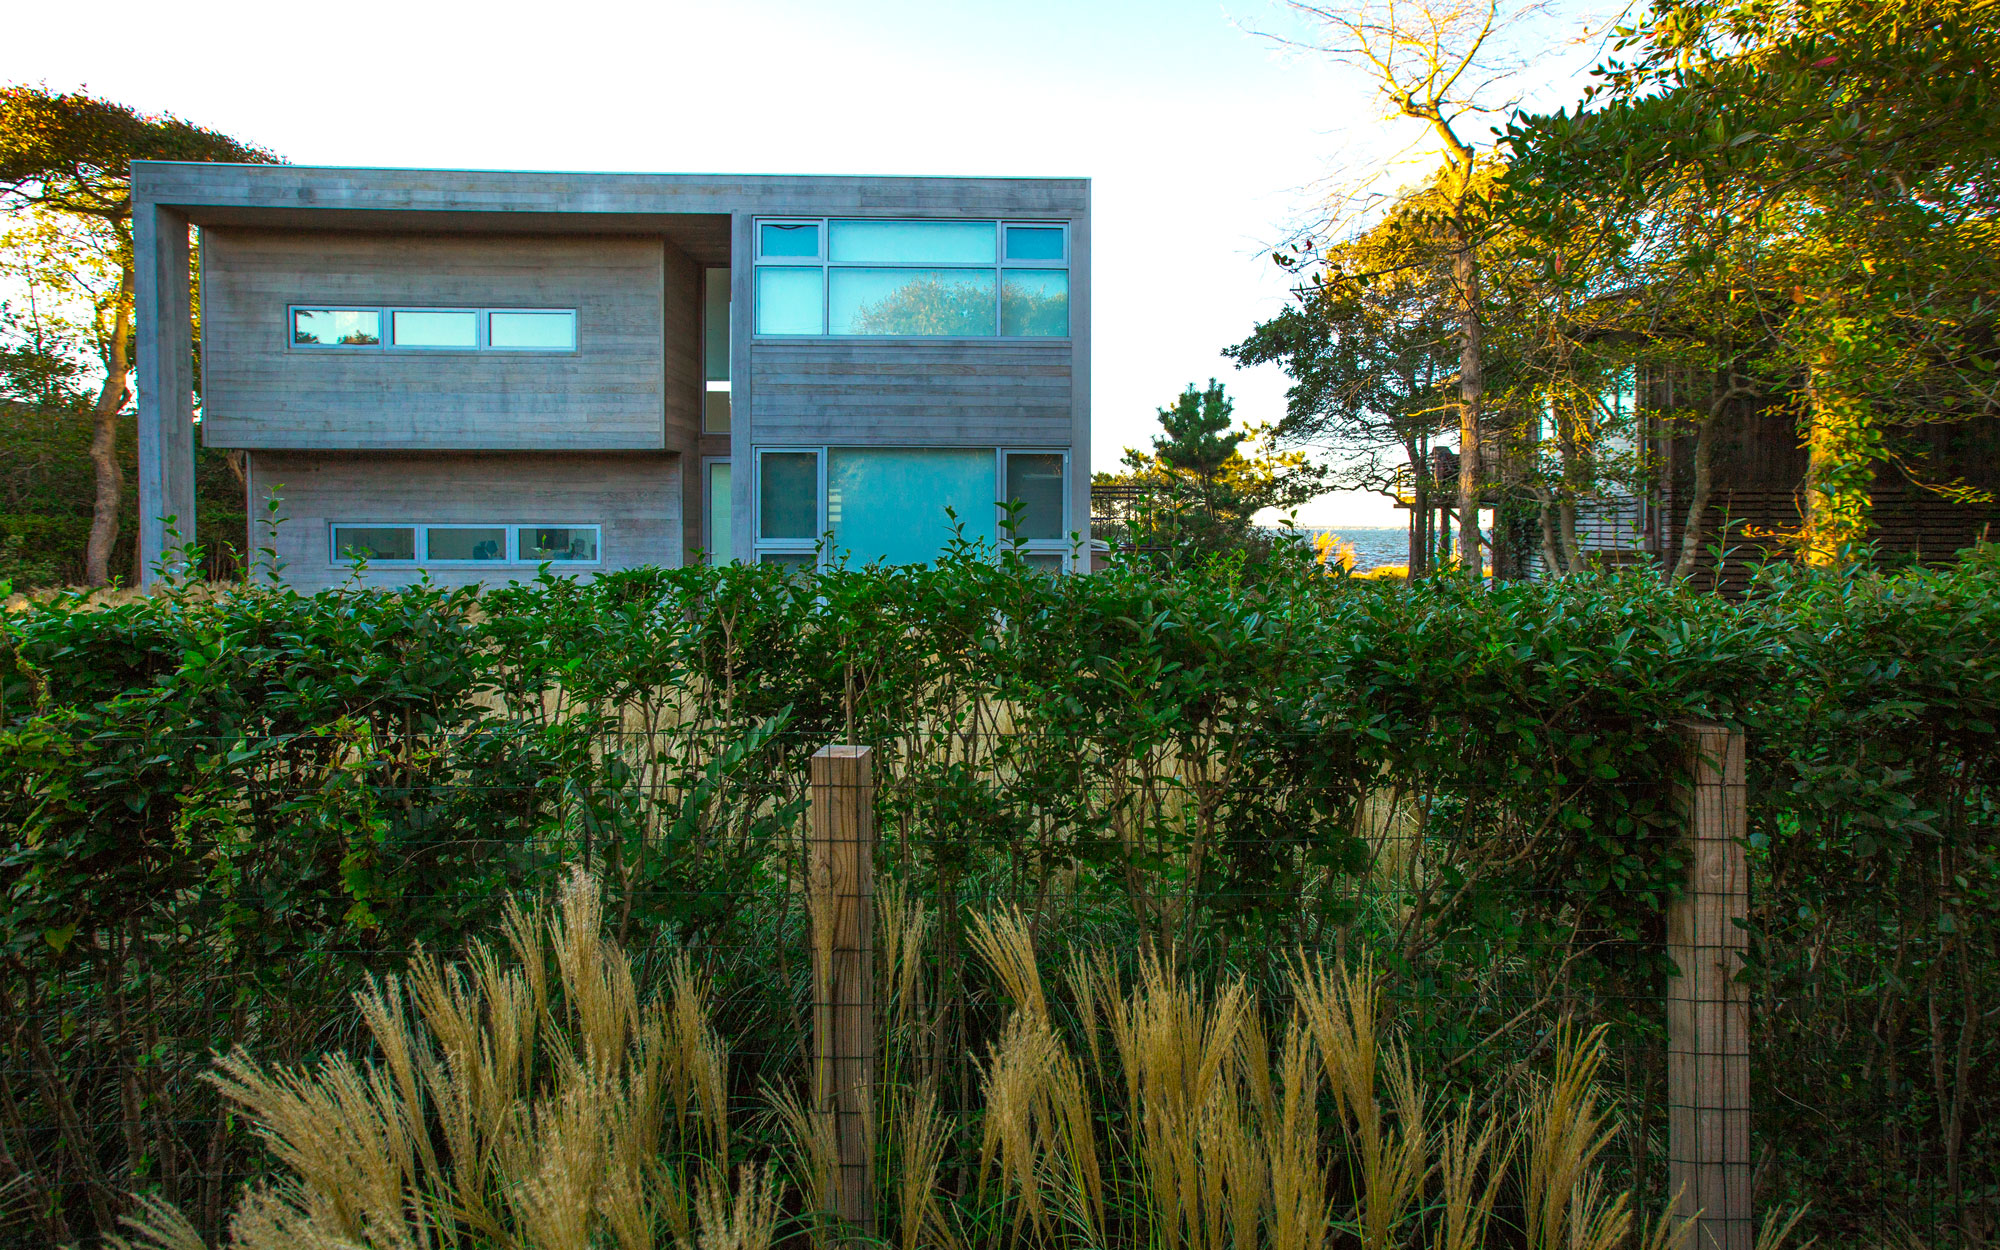 A Modern Architecture Tour of The Fire Island Pines